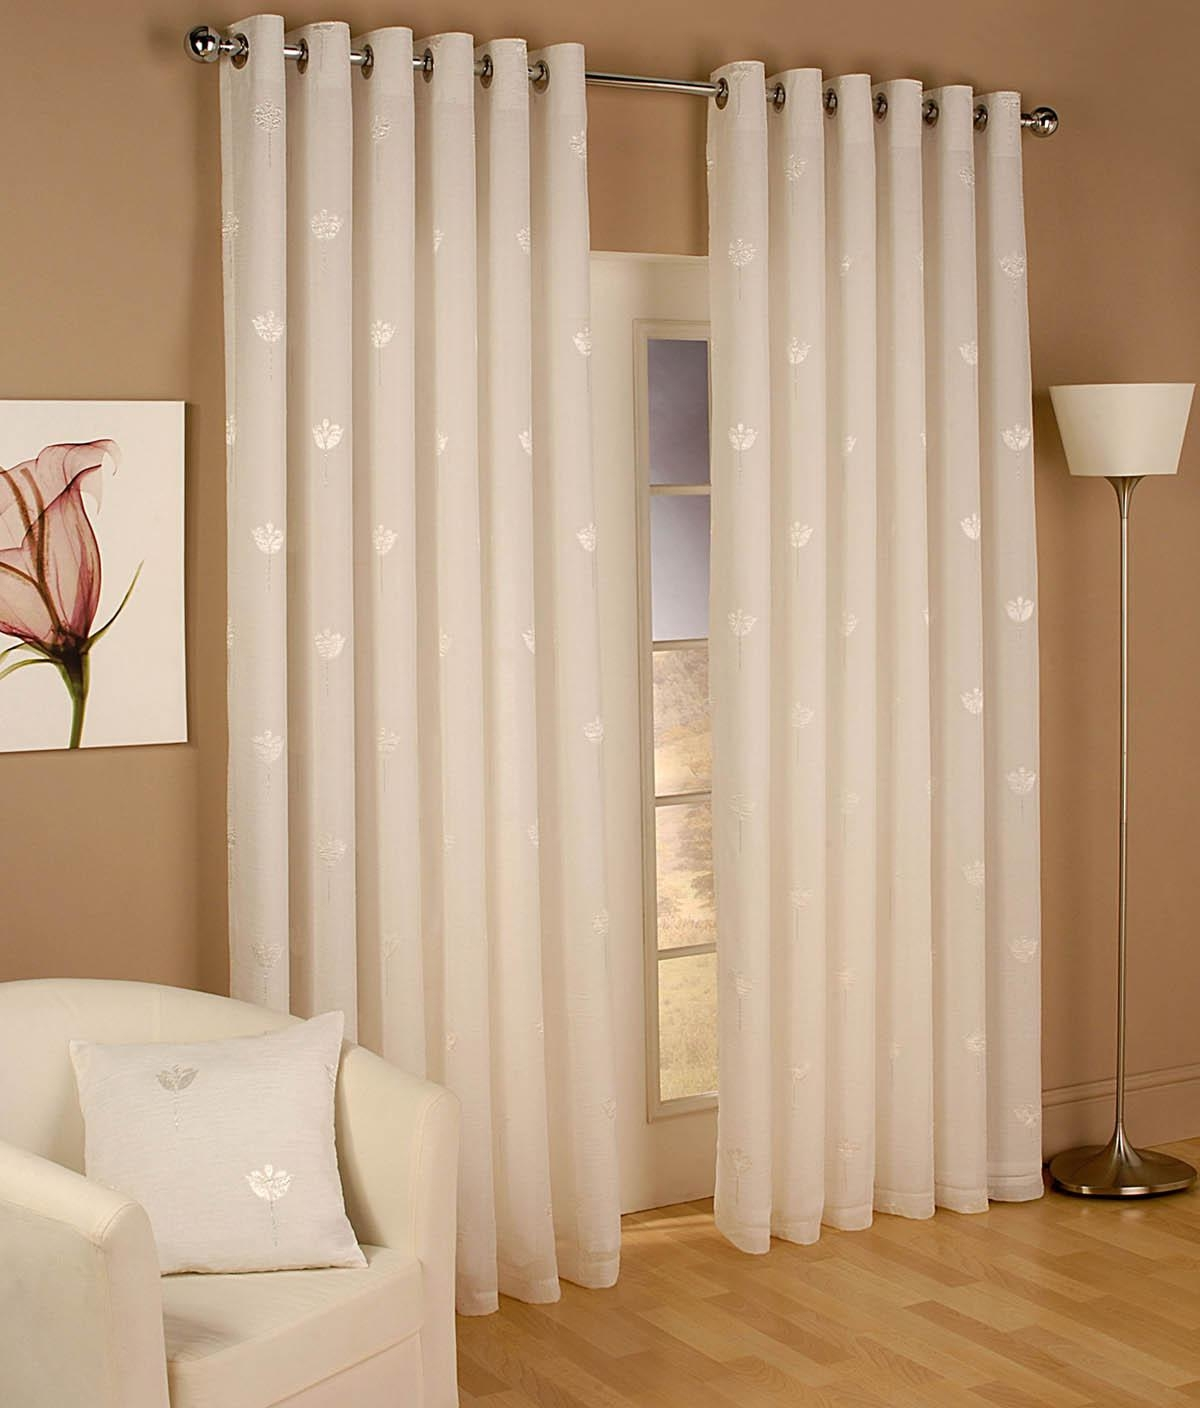 Miami Eyelet Voile Curtains Cortina1 Pinterest Voile Regarding Natural Curtain Panels (View 5 of 15)